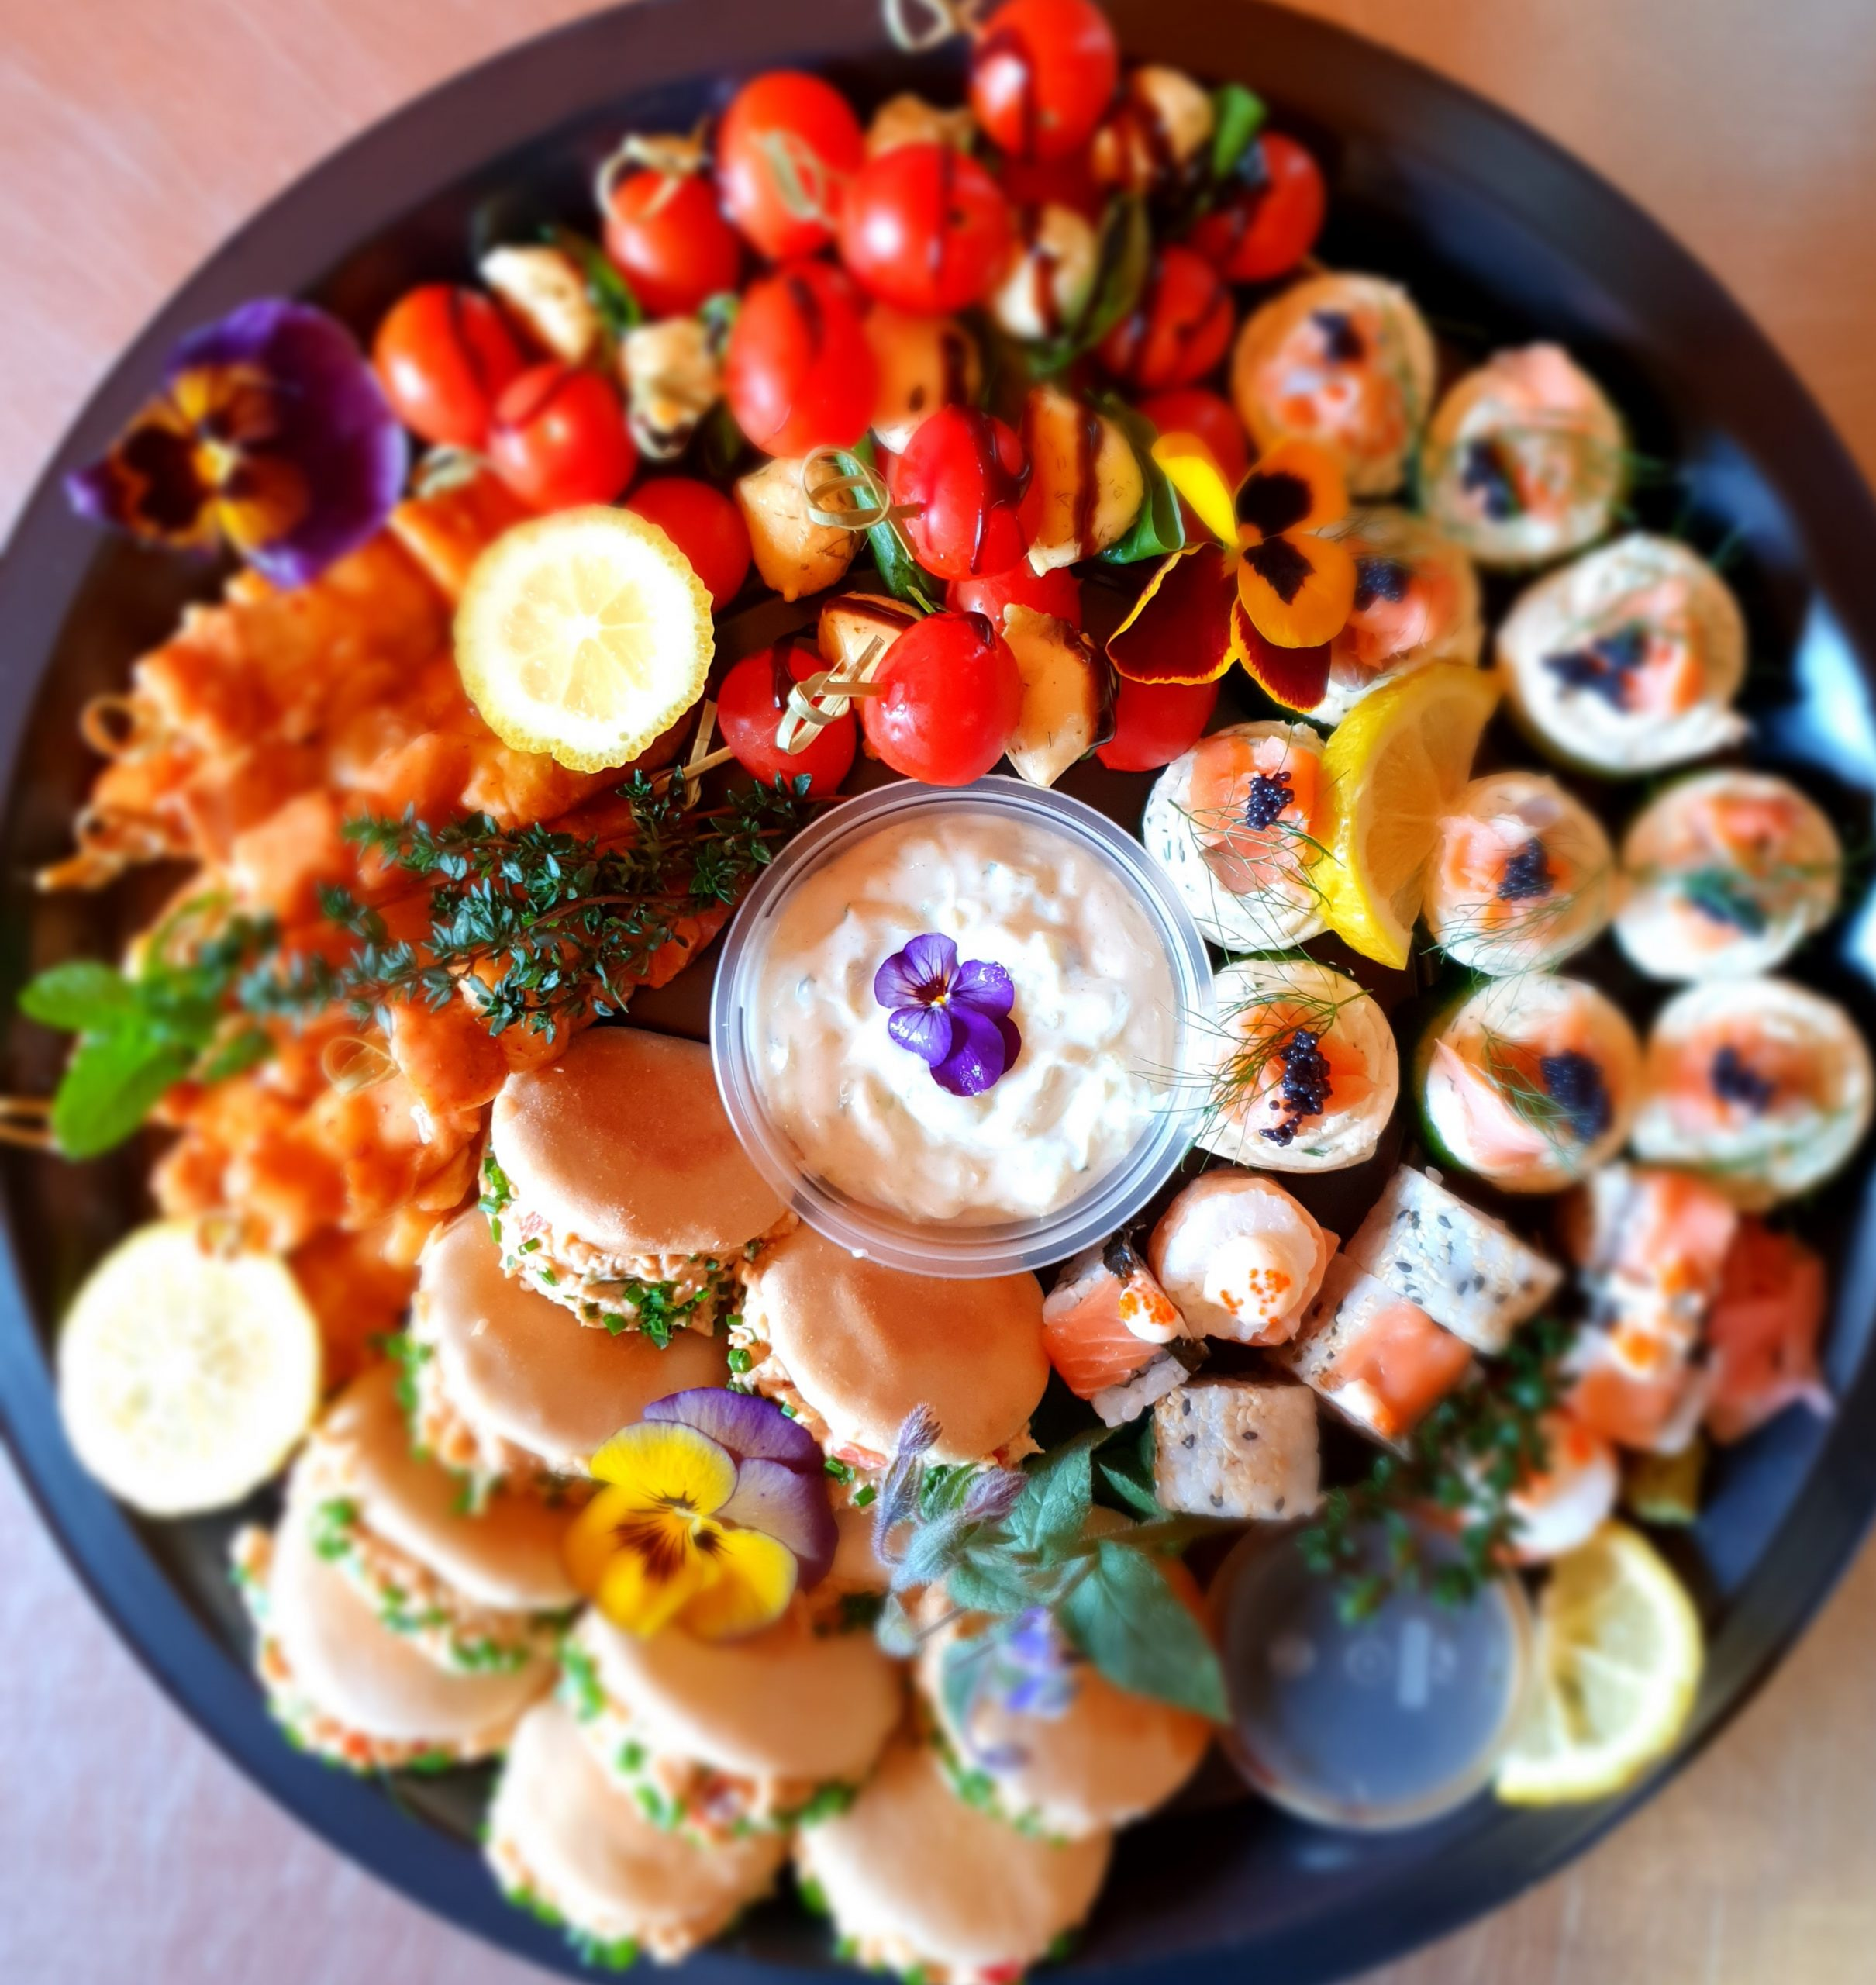 The BEST PLATTERS in Pretoria, Midrand, Centurion & Johannesburg